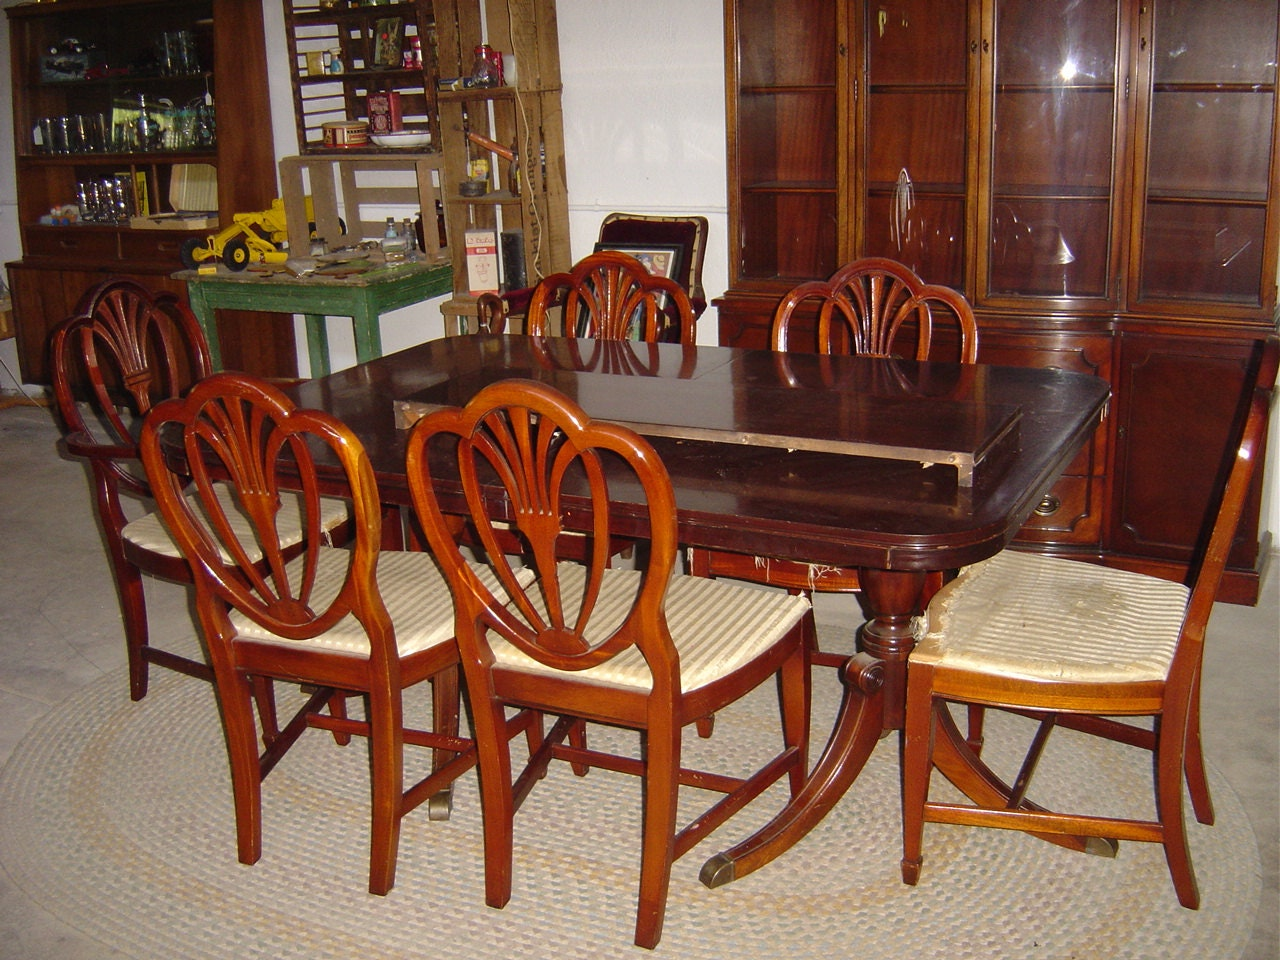 Drexel dining room furniture